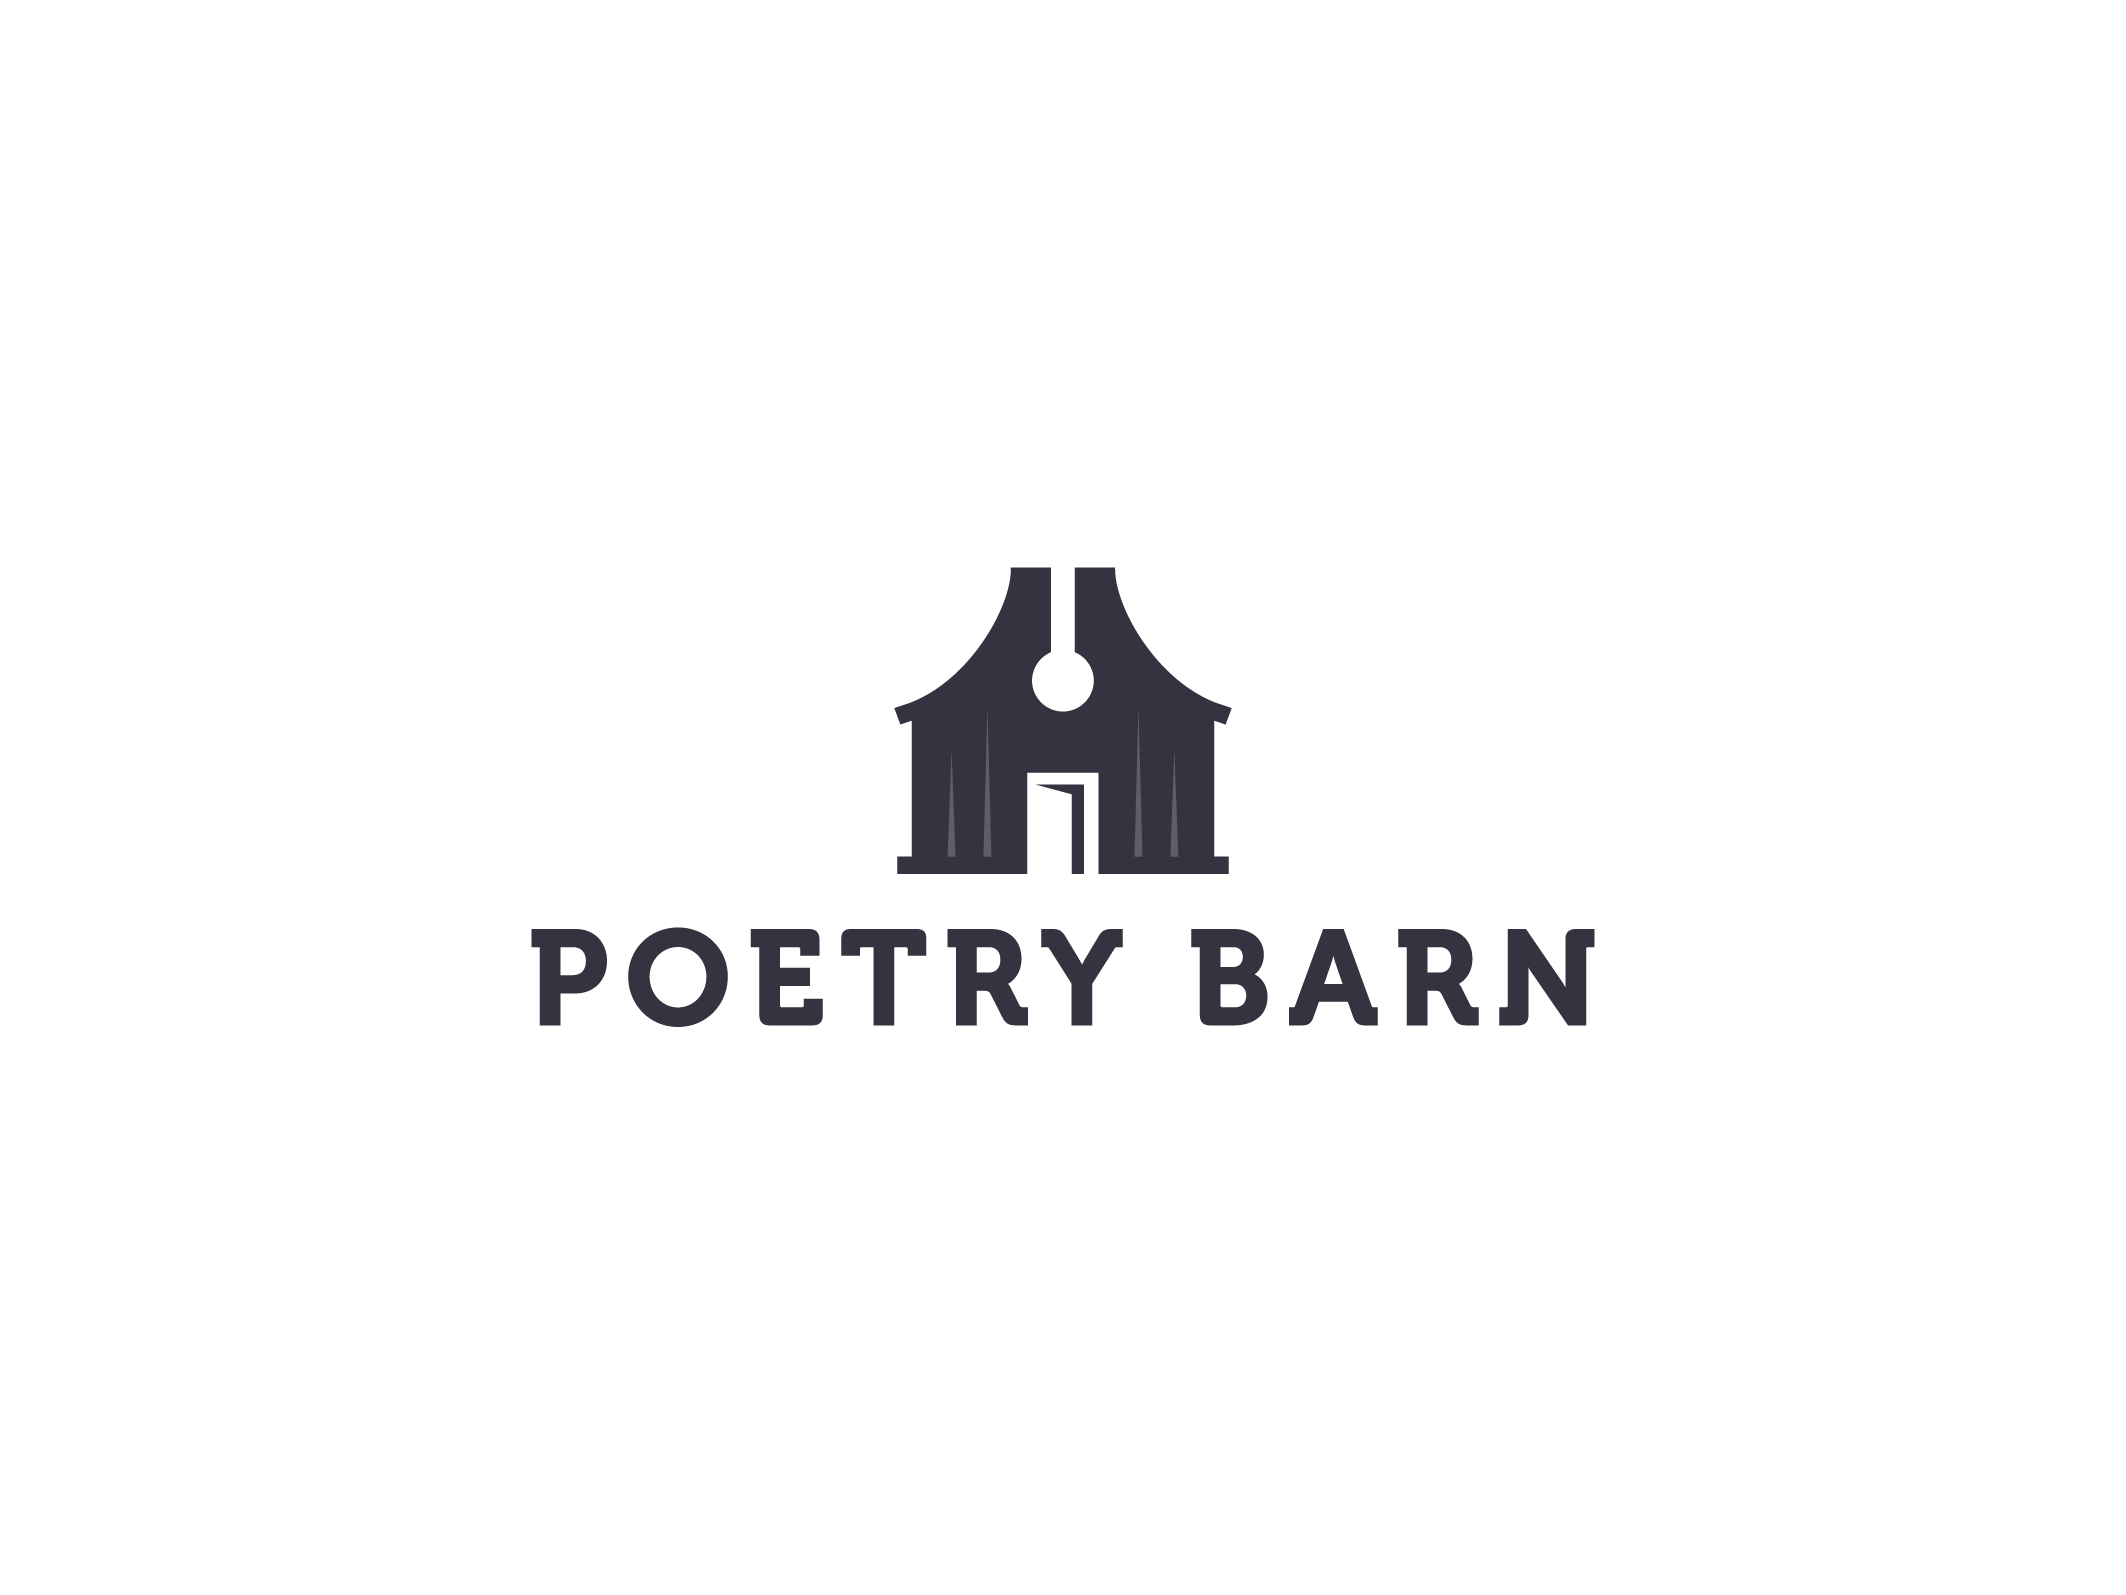 Create an evocative, memorable identity for The Poetry Barn!